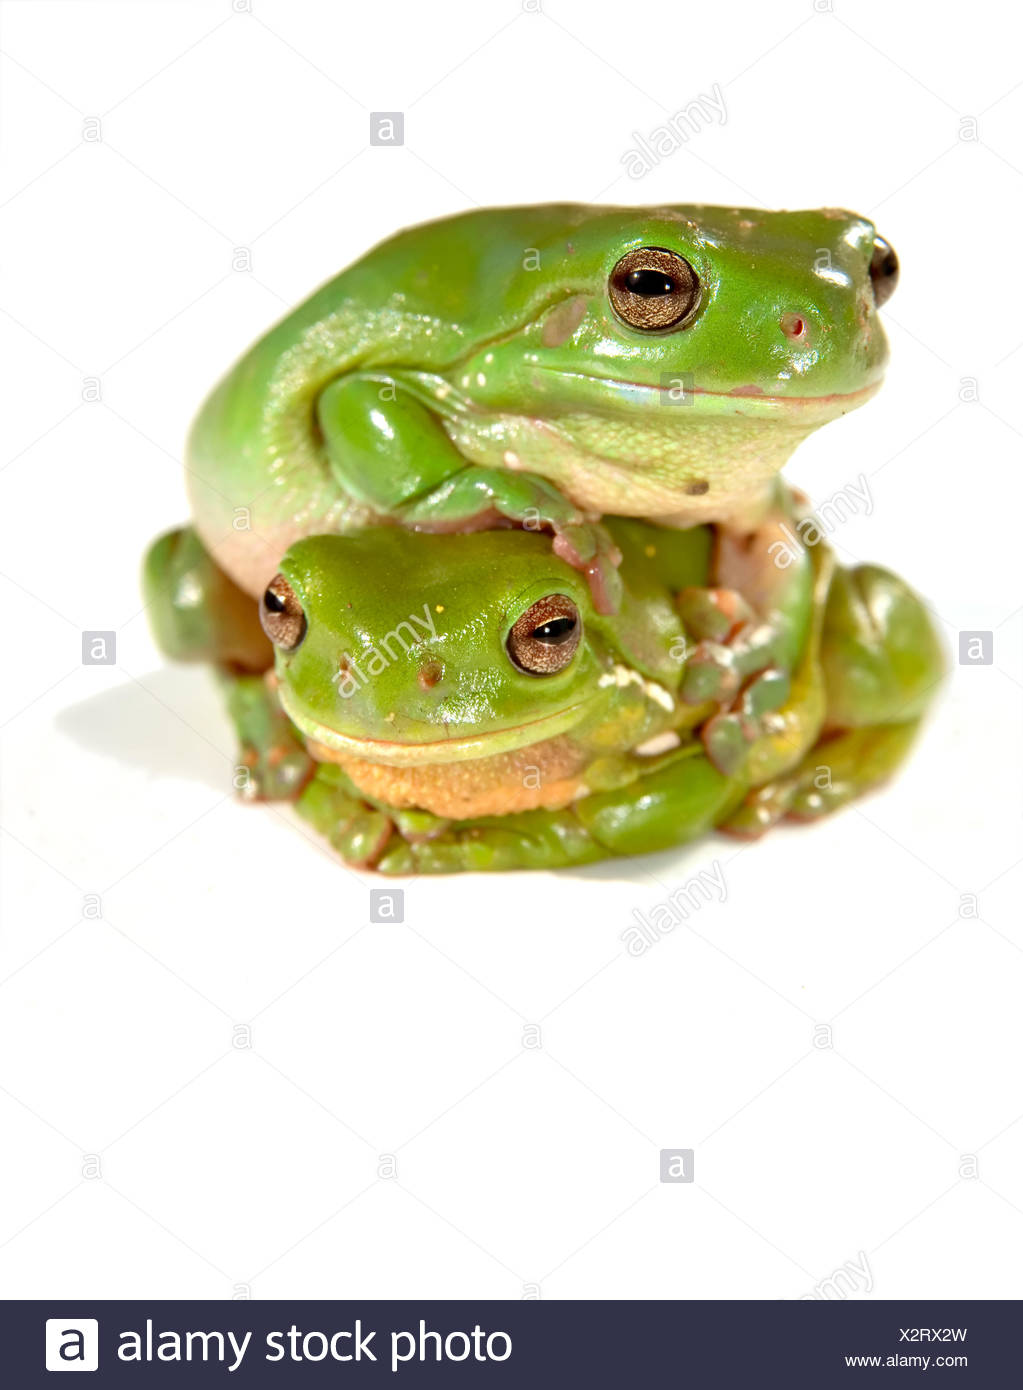 isolated tree animal amphibian photo camera frog wildlife greenback tree frog frogs image picture copy deduction lawn green - Stock Image